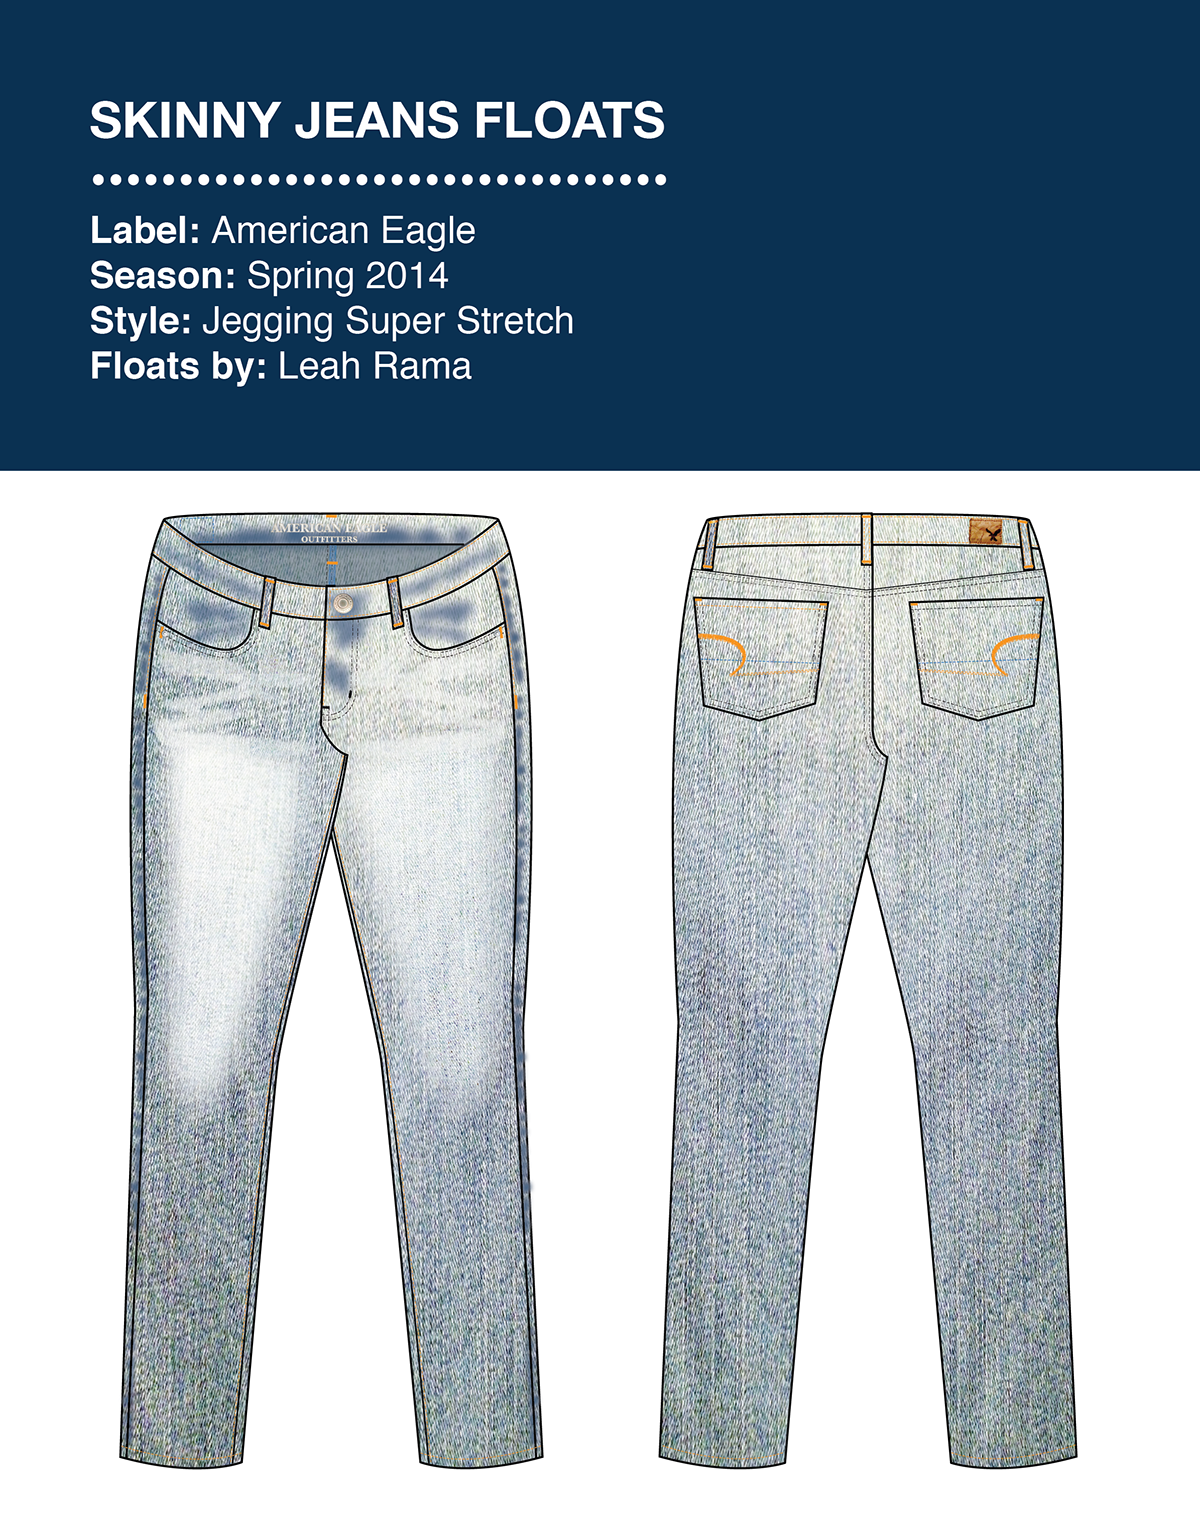 Production drawing jeans. Technical flats floats specs